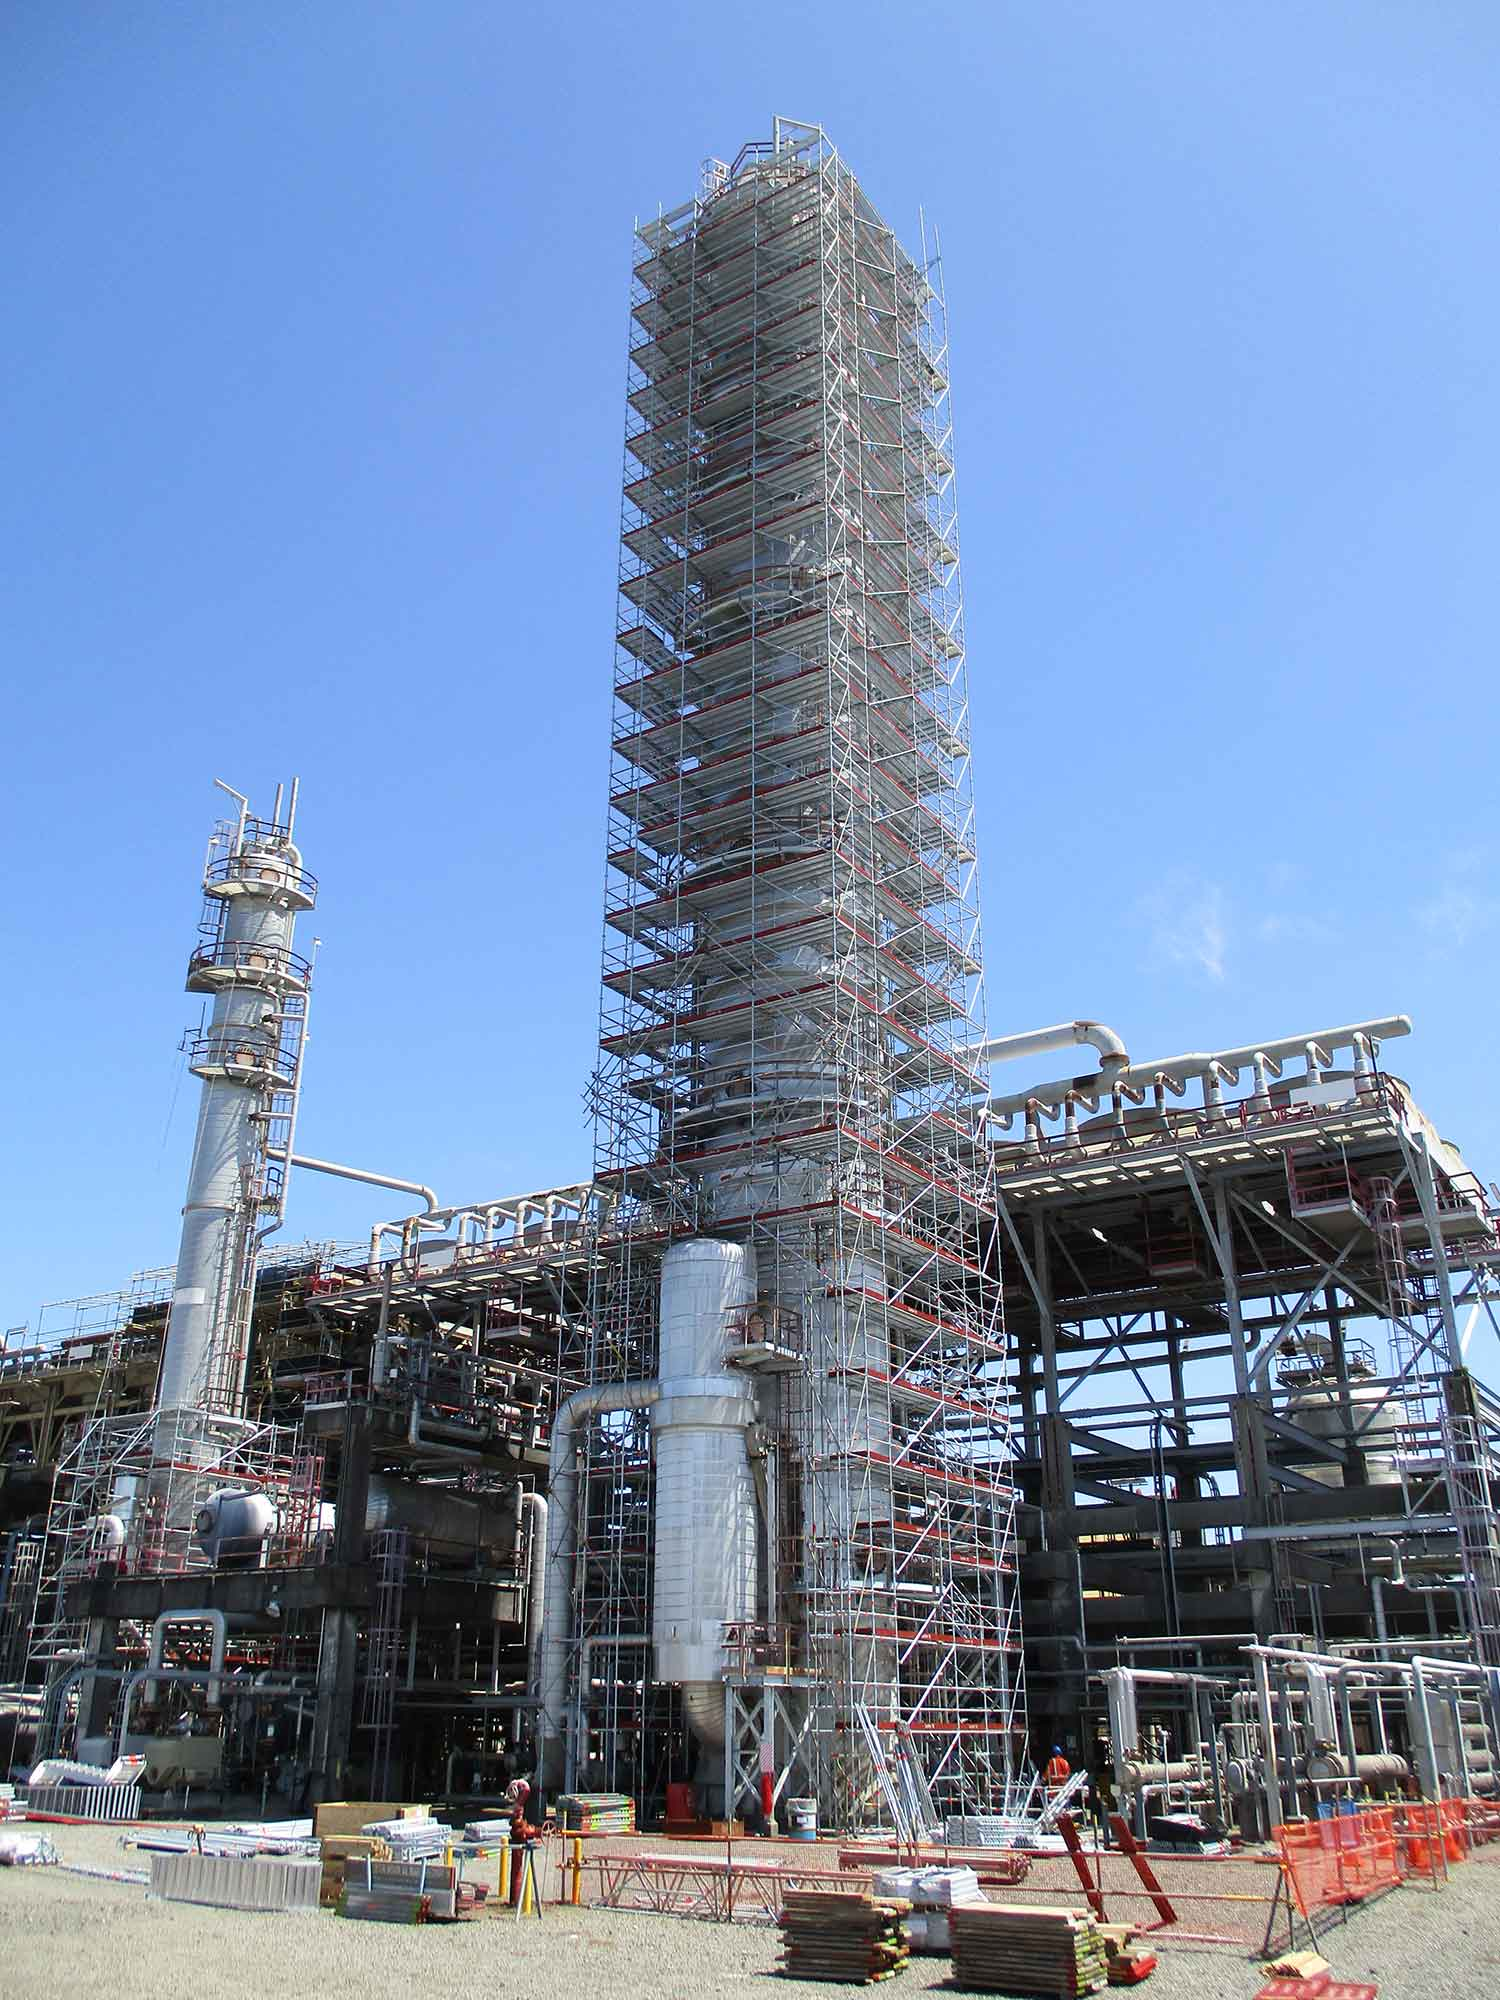 Fitzroy Engineering use Layher Allround Lightweight scaffolding on two large distillation columns standing 55m and 37m respectively.